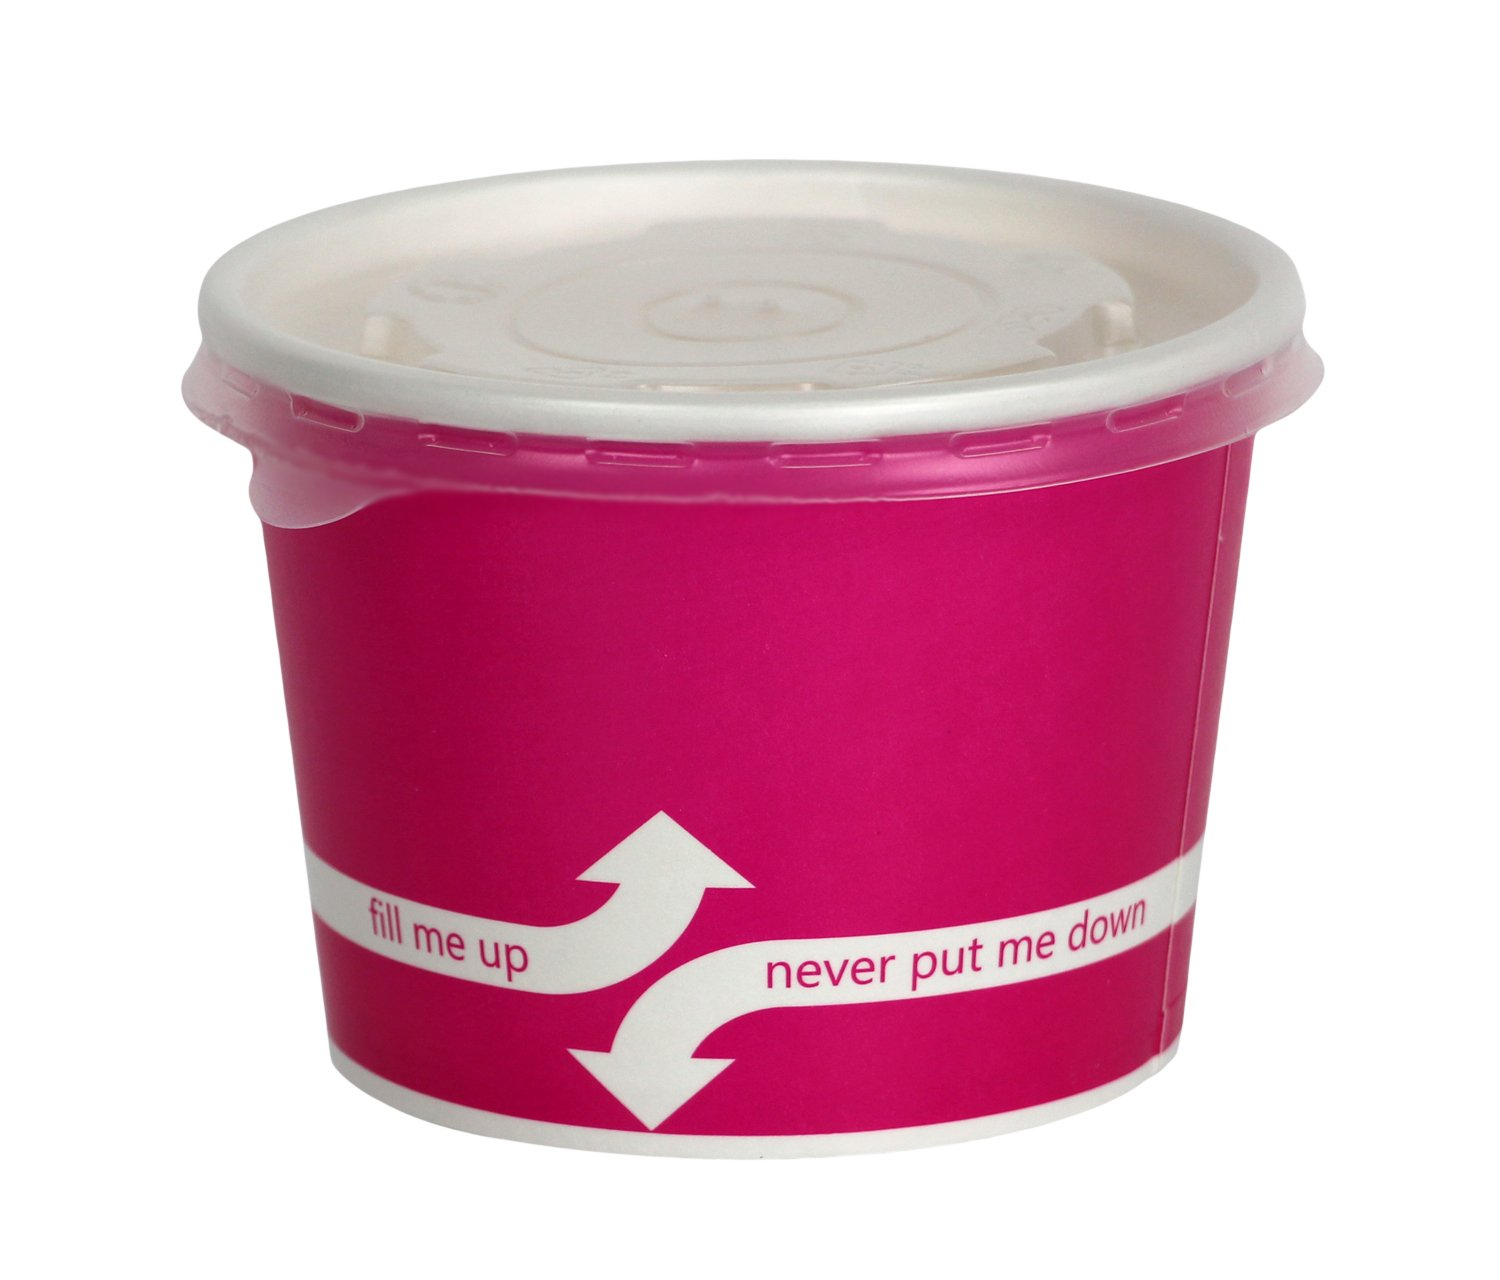 100 Count Pink Deli Containers Durable Food Storage Containers with Lids Hot and Cold Disposable 12oz Containers Use for Frozen Desserts, Soups, or Any Food of Your Choice